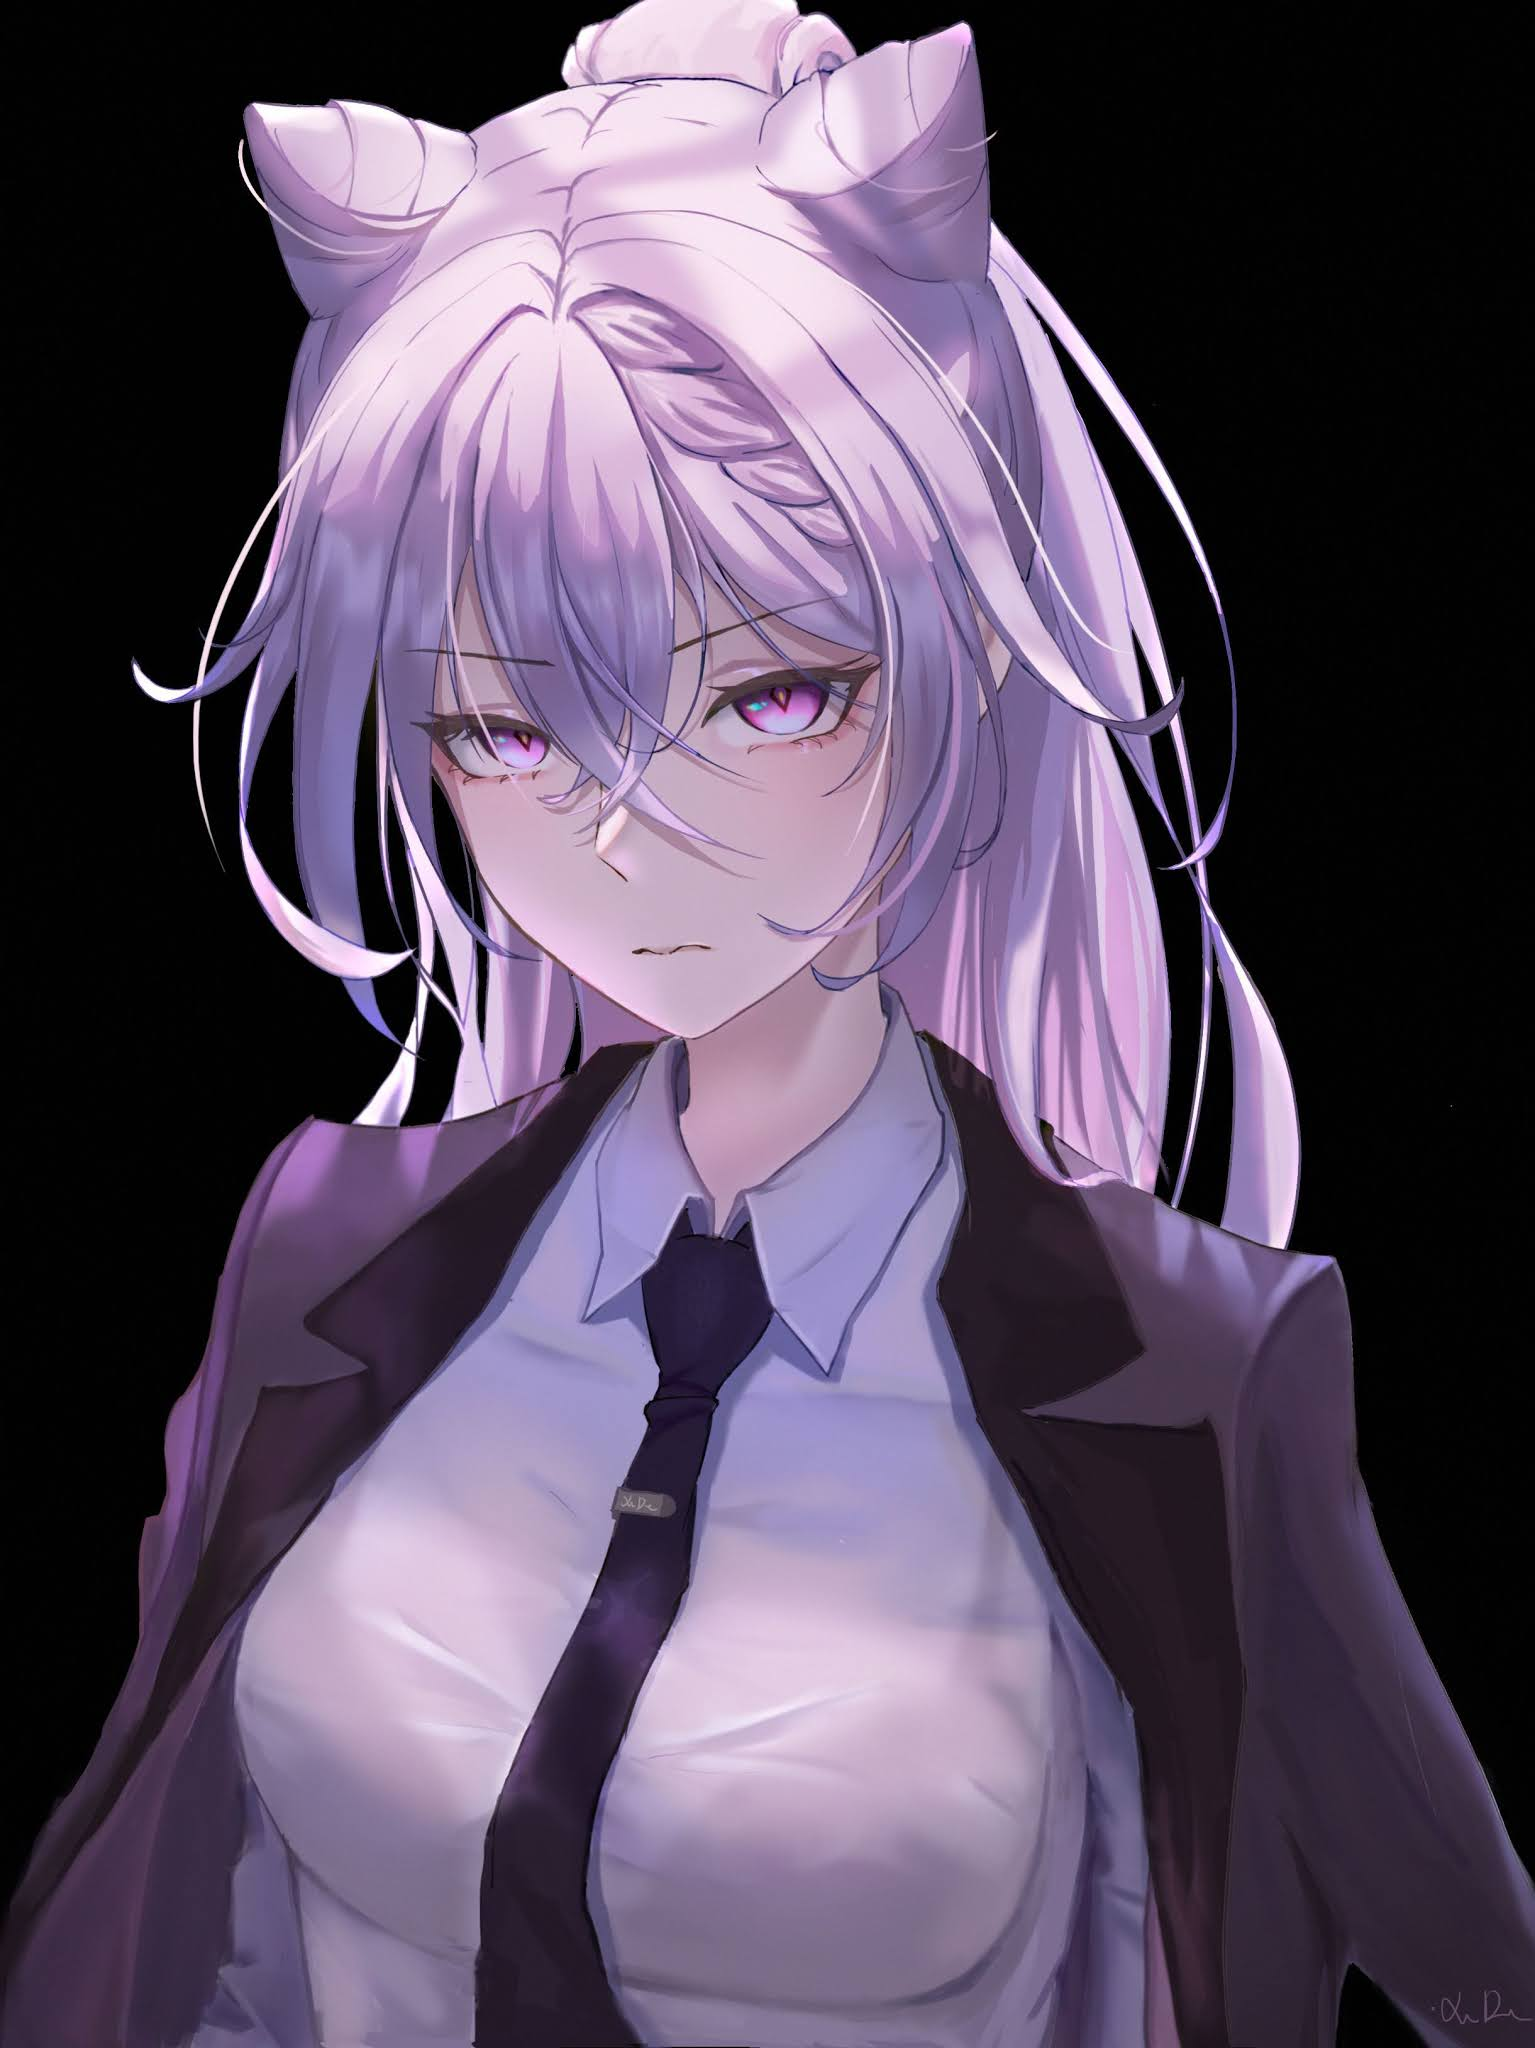 anime girl with white hair and purple eyes